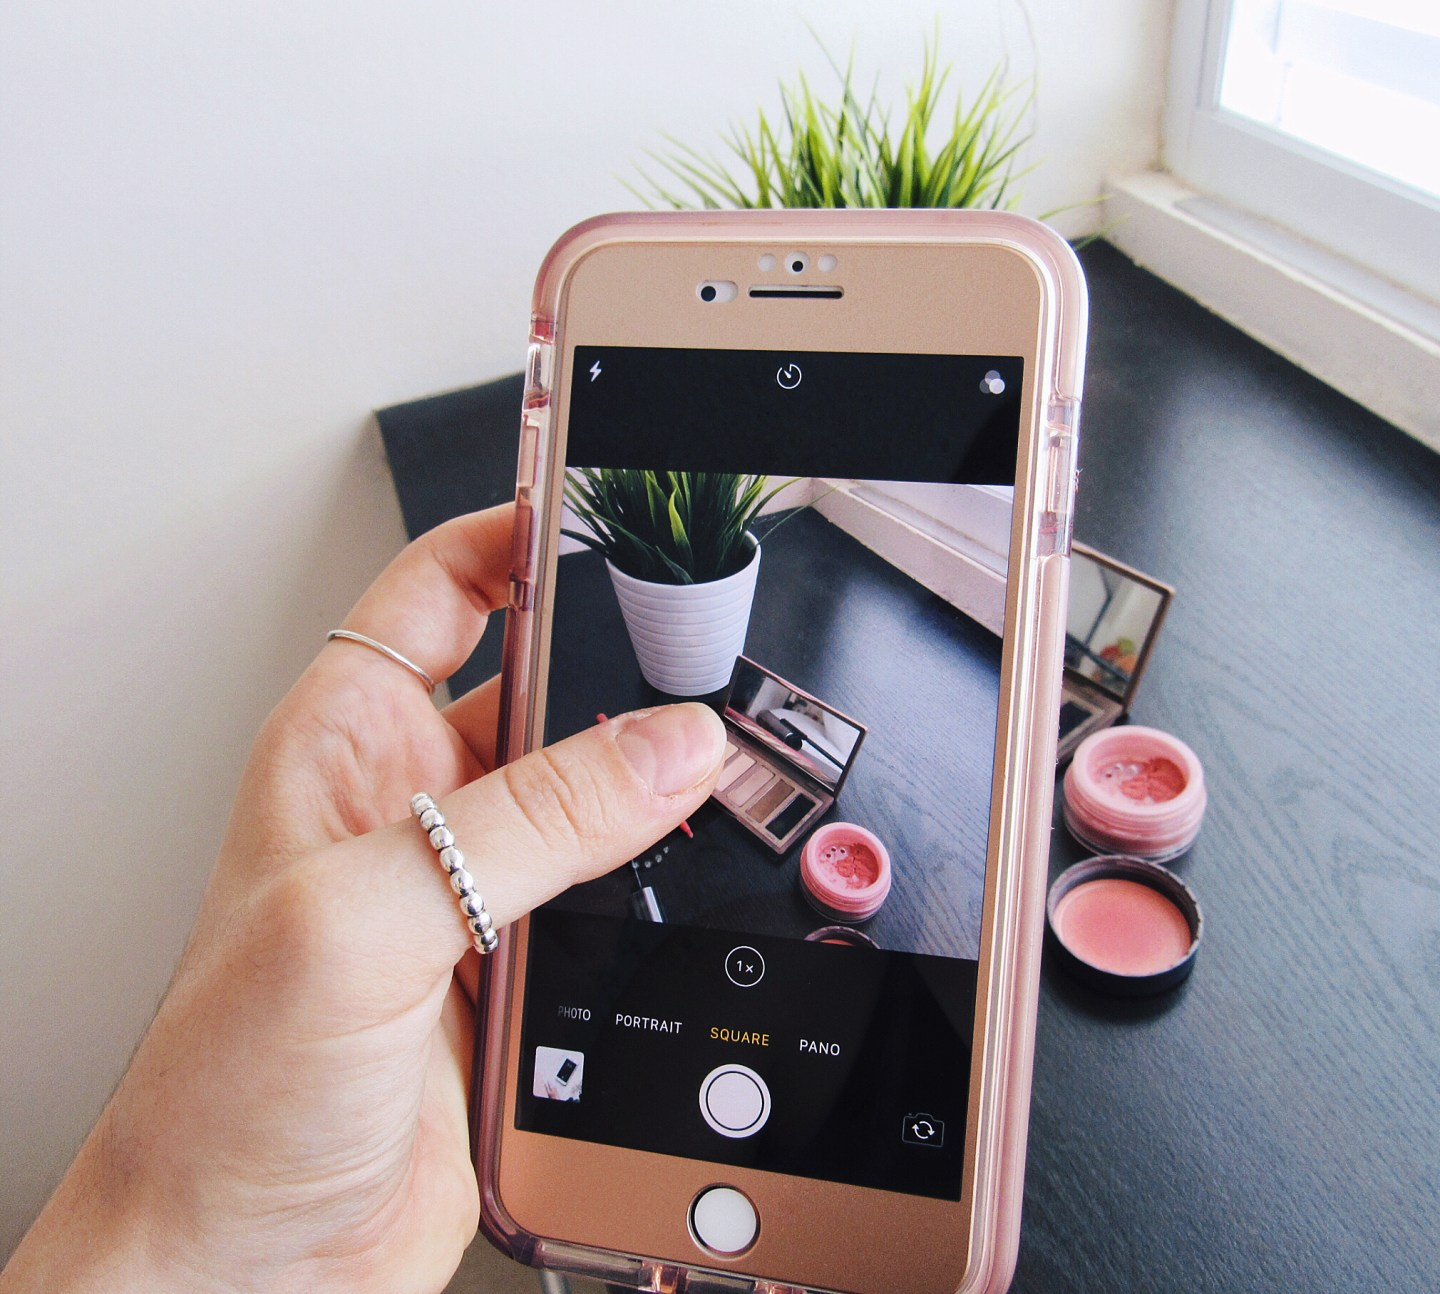 Best Editing Apps for Instagram Worthy Pics